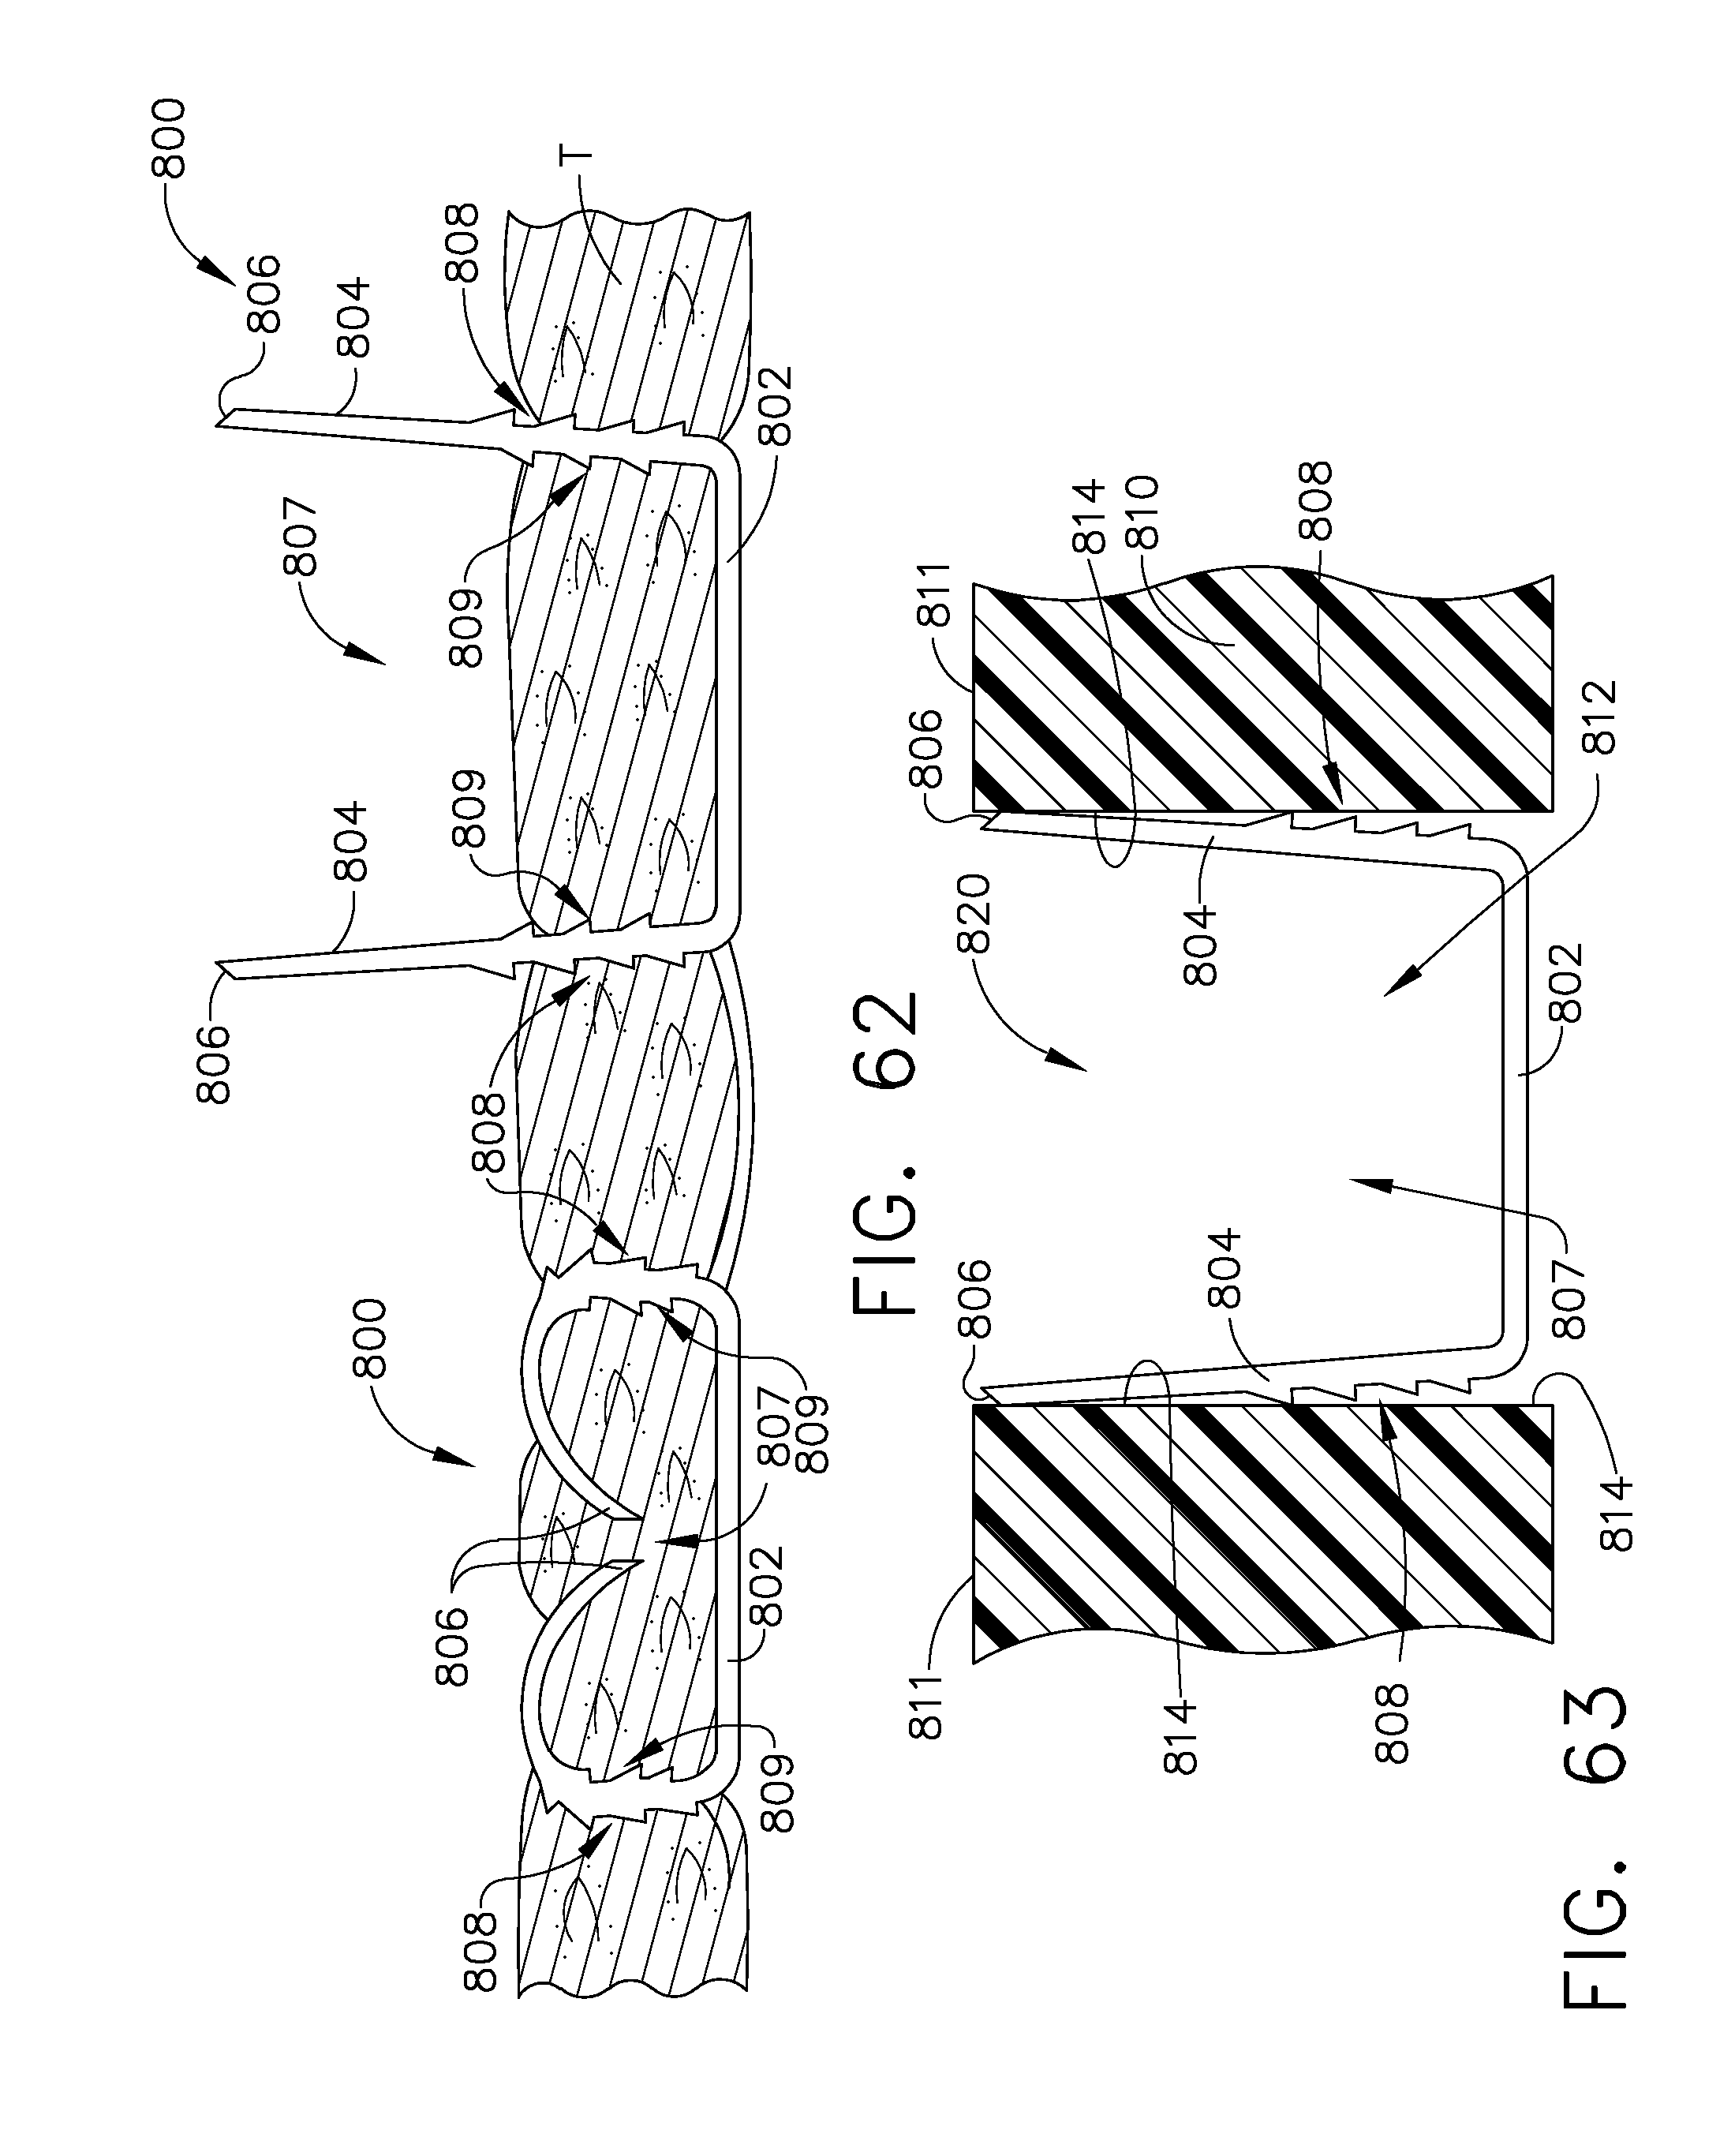 us9775608b2 fastening system prising a firing member lockout Toyota Sequoia Power Steering Diagram us9775608b2 fastening system prising a firing member lockout patents